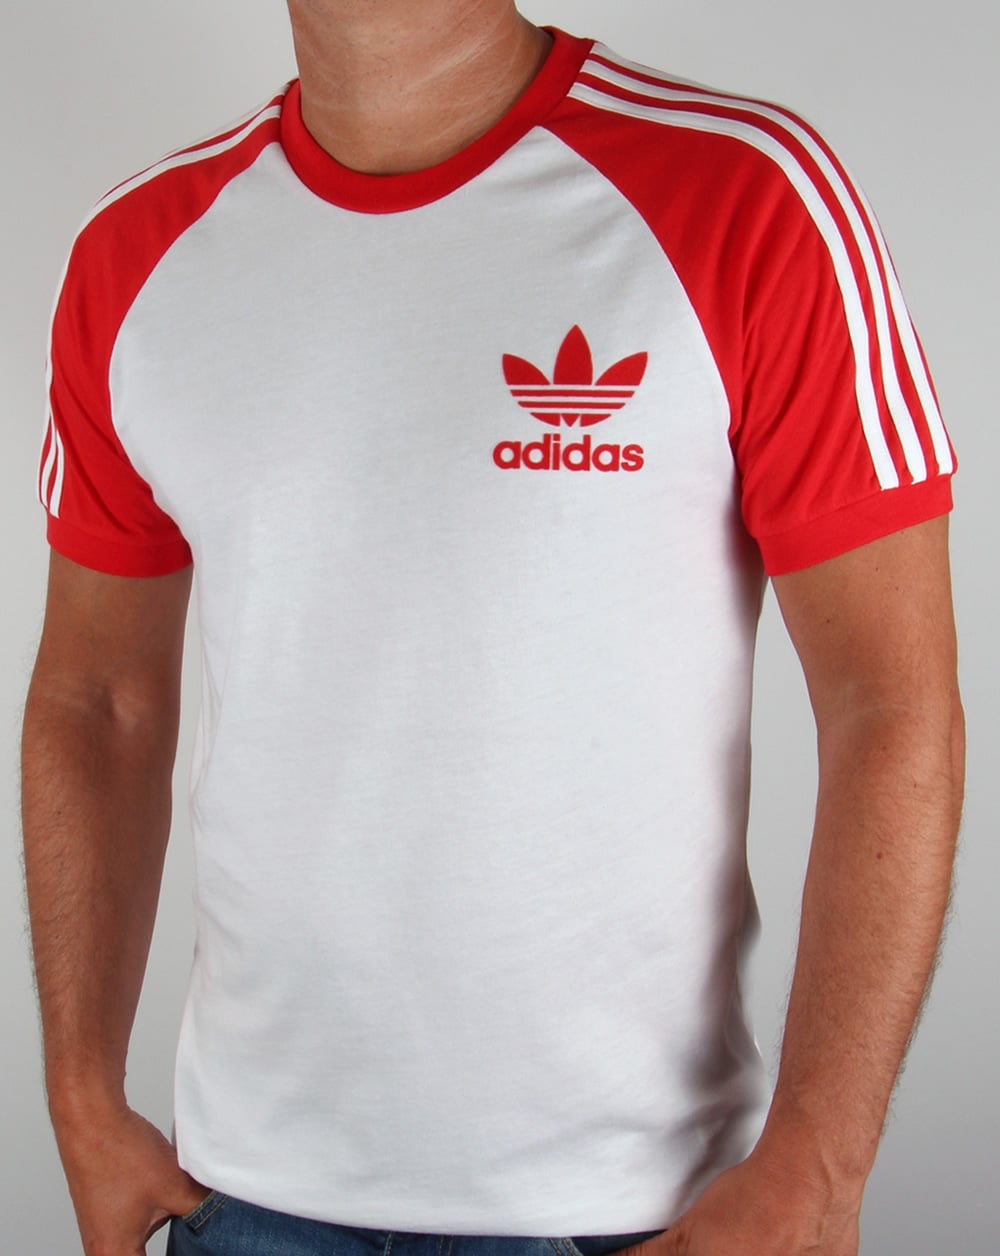 adidas Originals Adidas Originals Retro 3 Stripe T-shirt White Red d704b81730